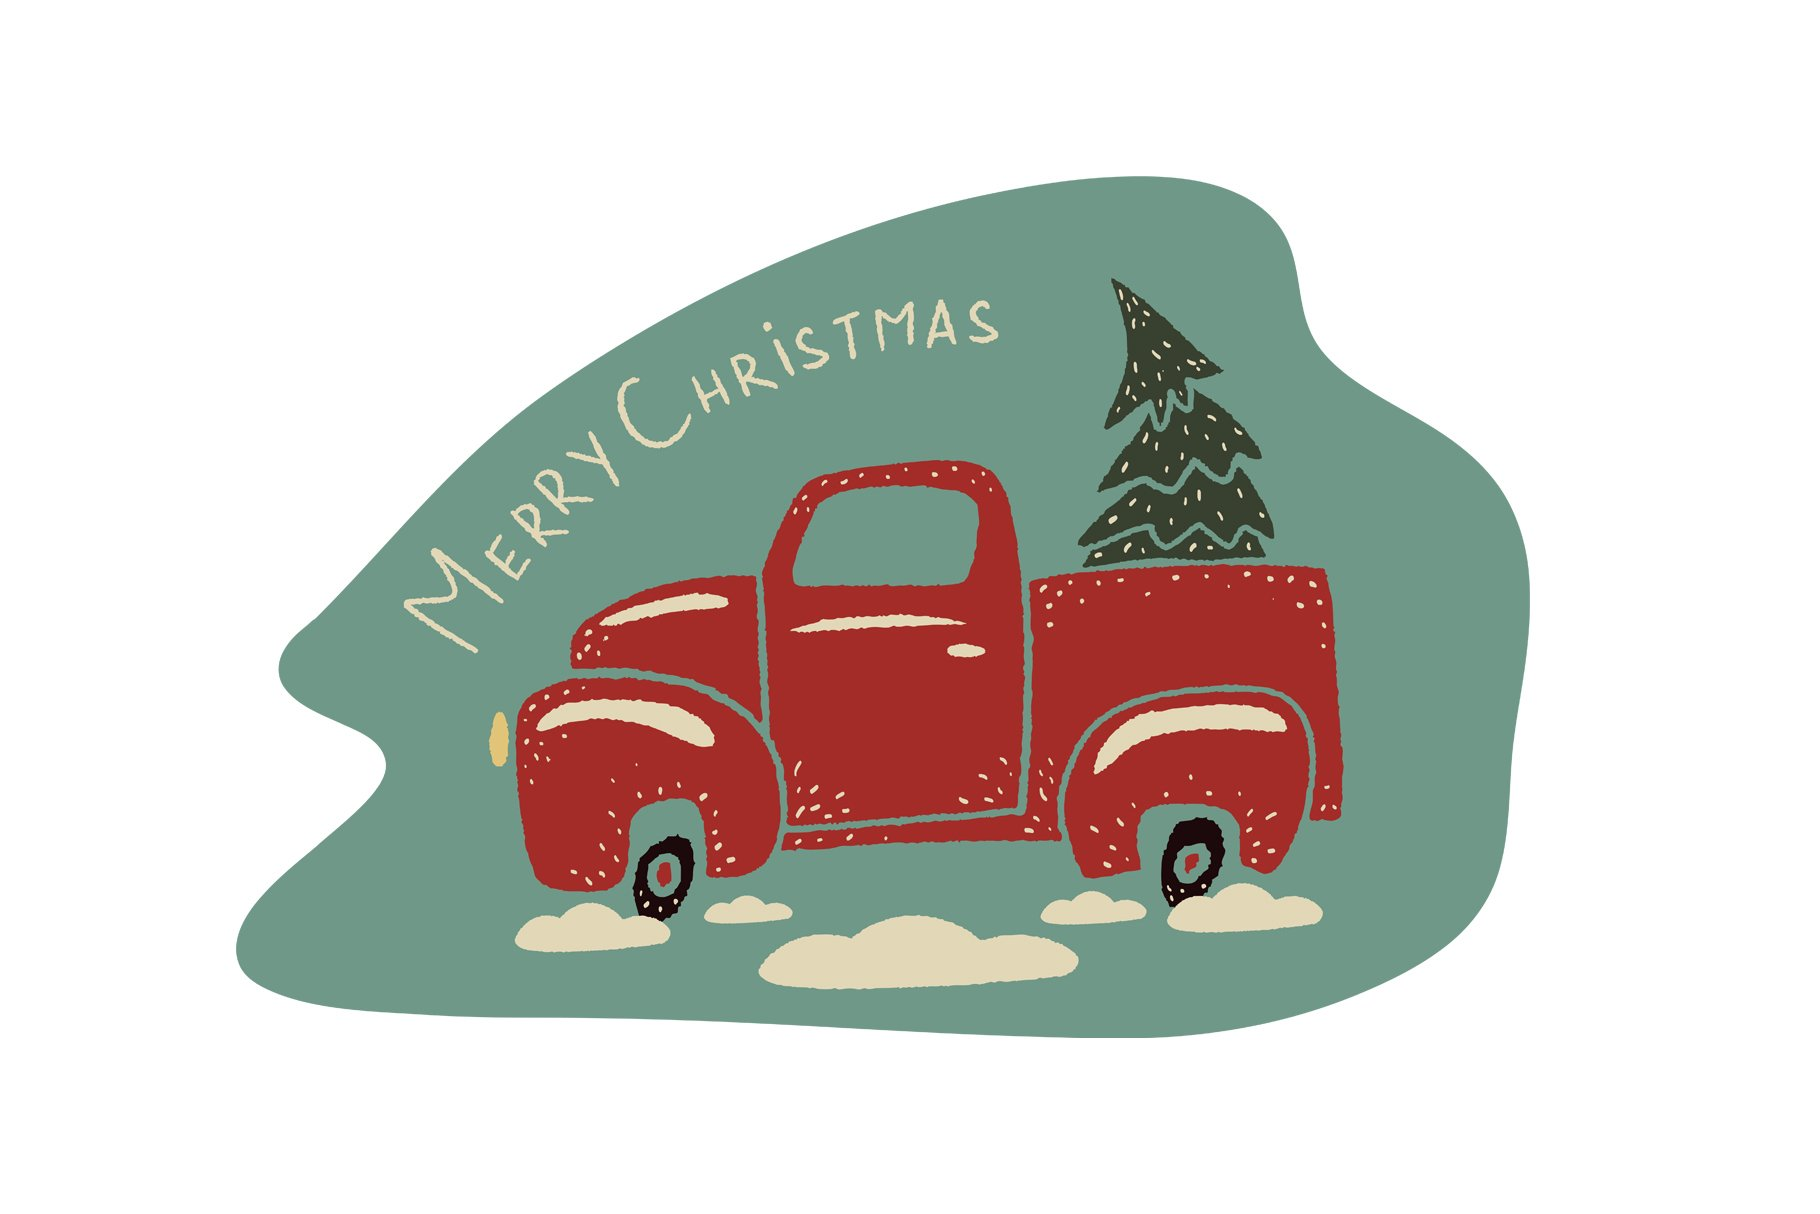 Vintage Christmas Cartoon Truck Pickup 785811 Illustrations Design Bundles Choose from 290+ cartoon christmas tree graphic resources and download in the form of png, eps, ai or psd. vintage christmas cartoon truck pickup